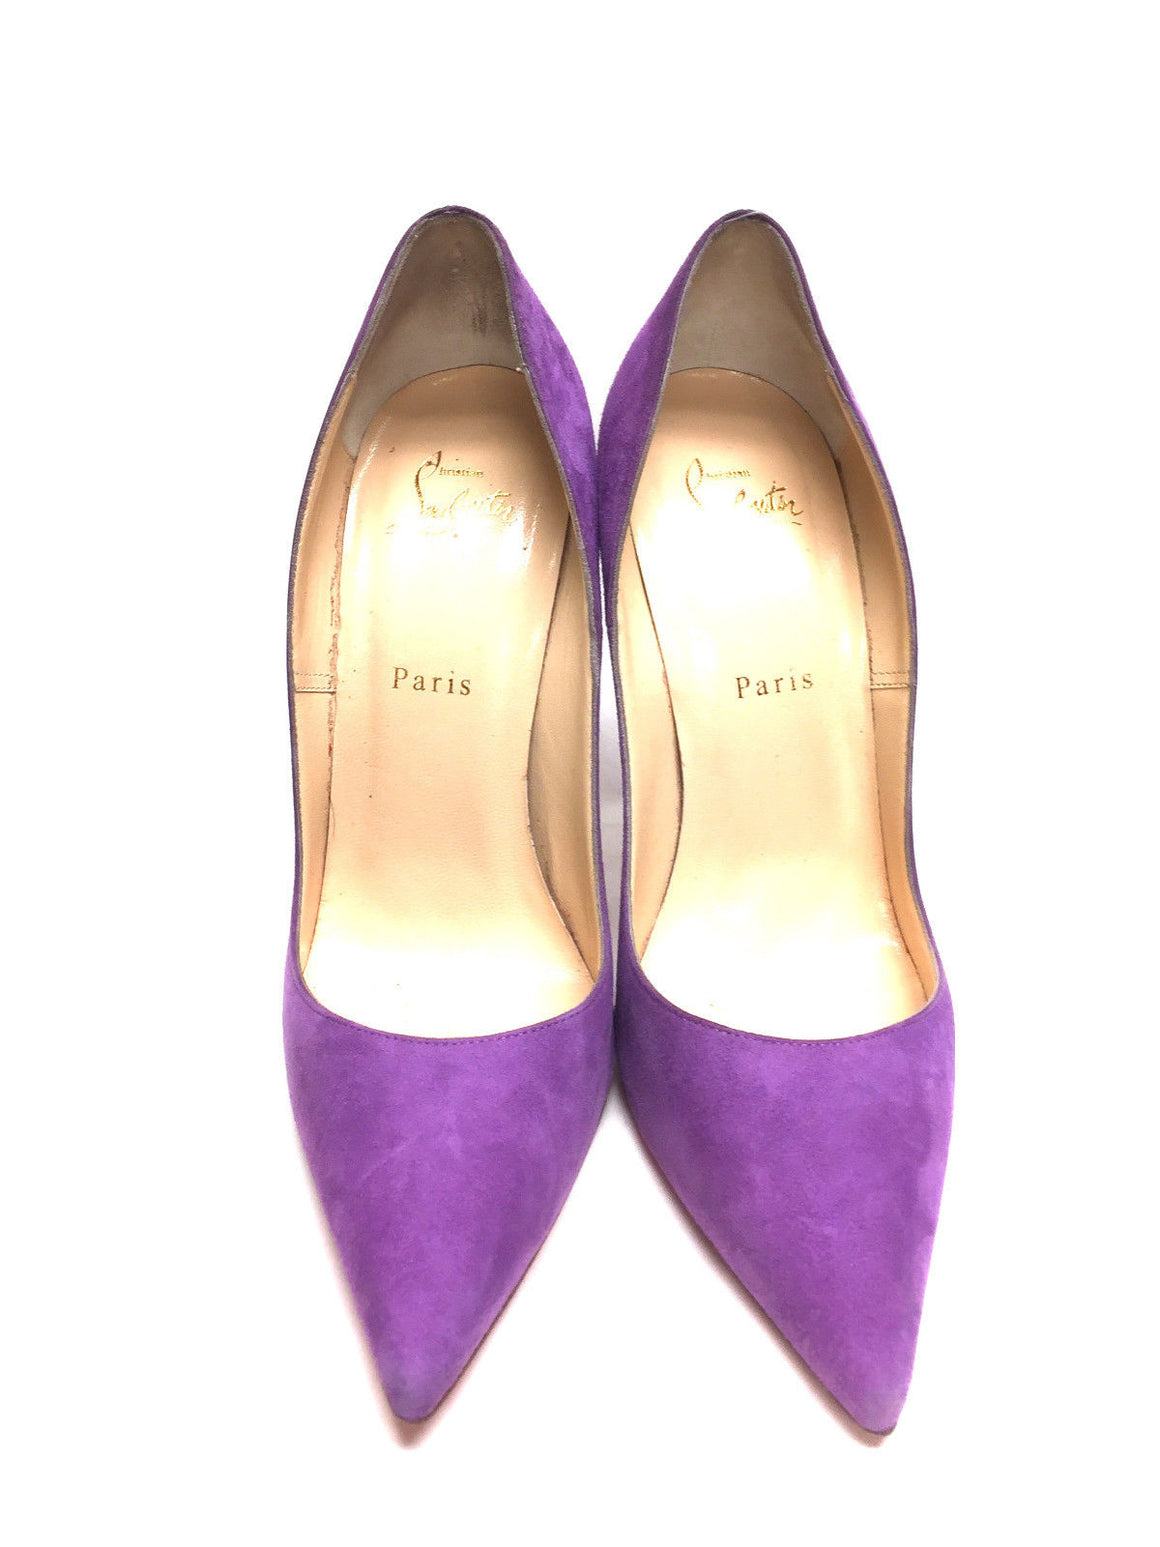 "bisbiz.com CHRISTIAN LOUBOUTIN  Orchid-Purple Suede Pointed-Toe Stiletto Heels ""SO KATE"" Pumps  Size: 39.5 / 9 - Bis Designer Resale"